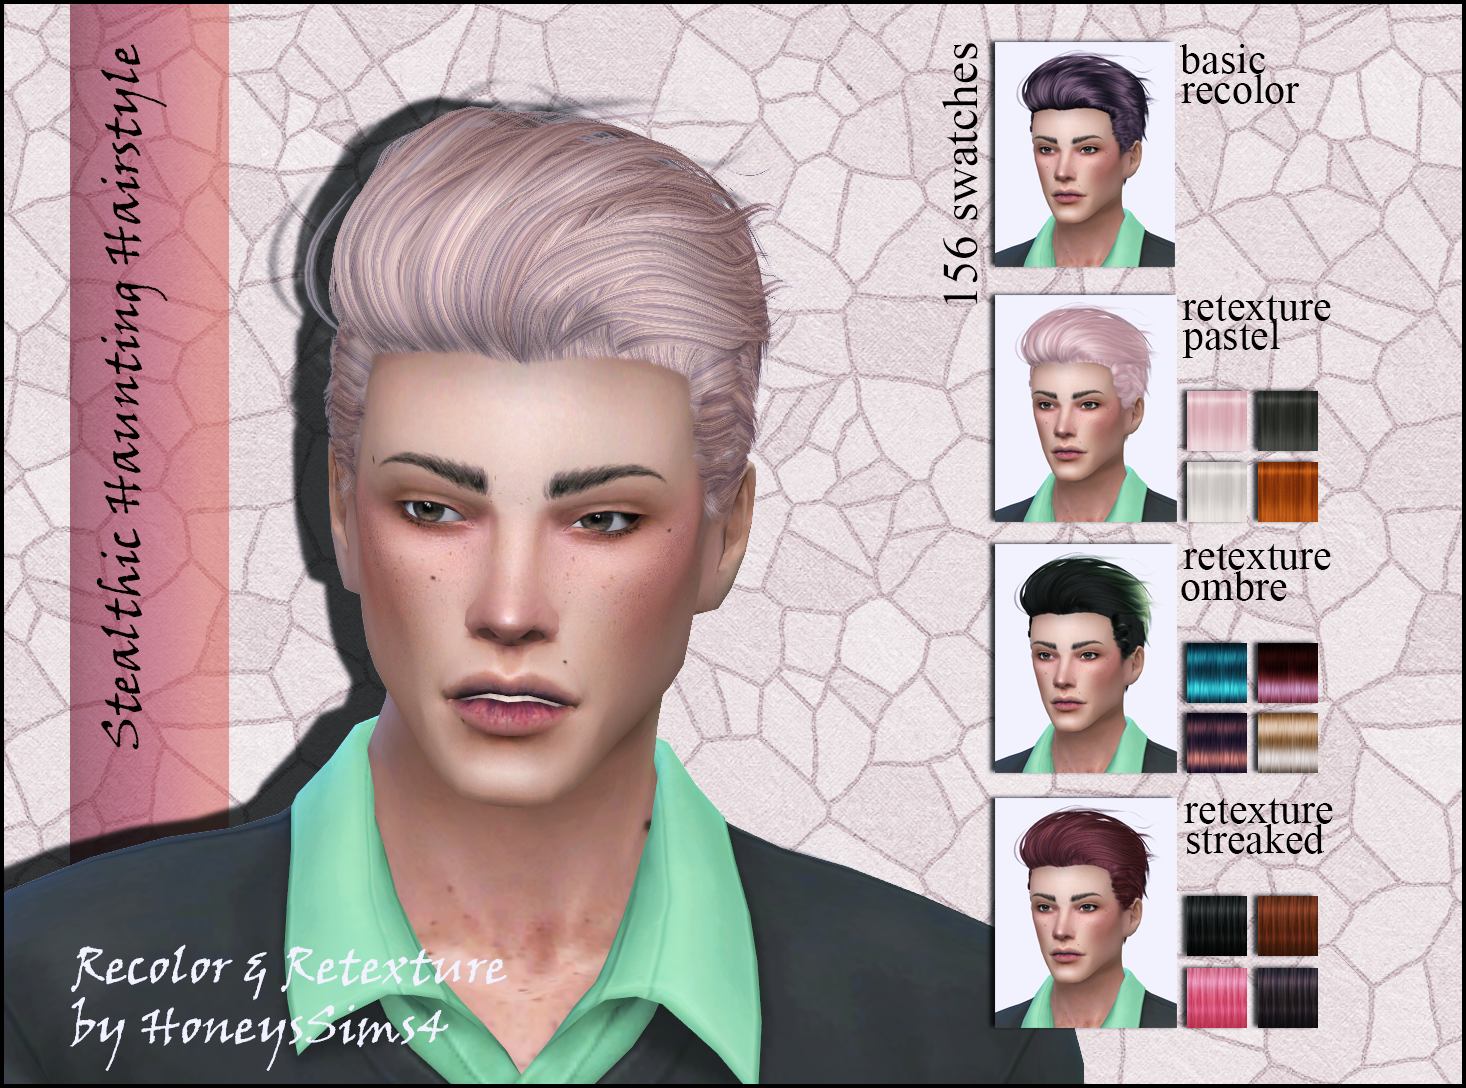 Sims 4 Male Hair Recolor Retexture By Honeyssims4 Mesh By Stealthic